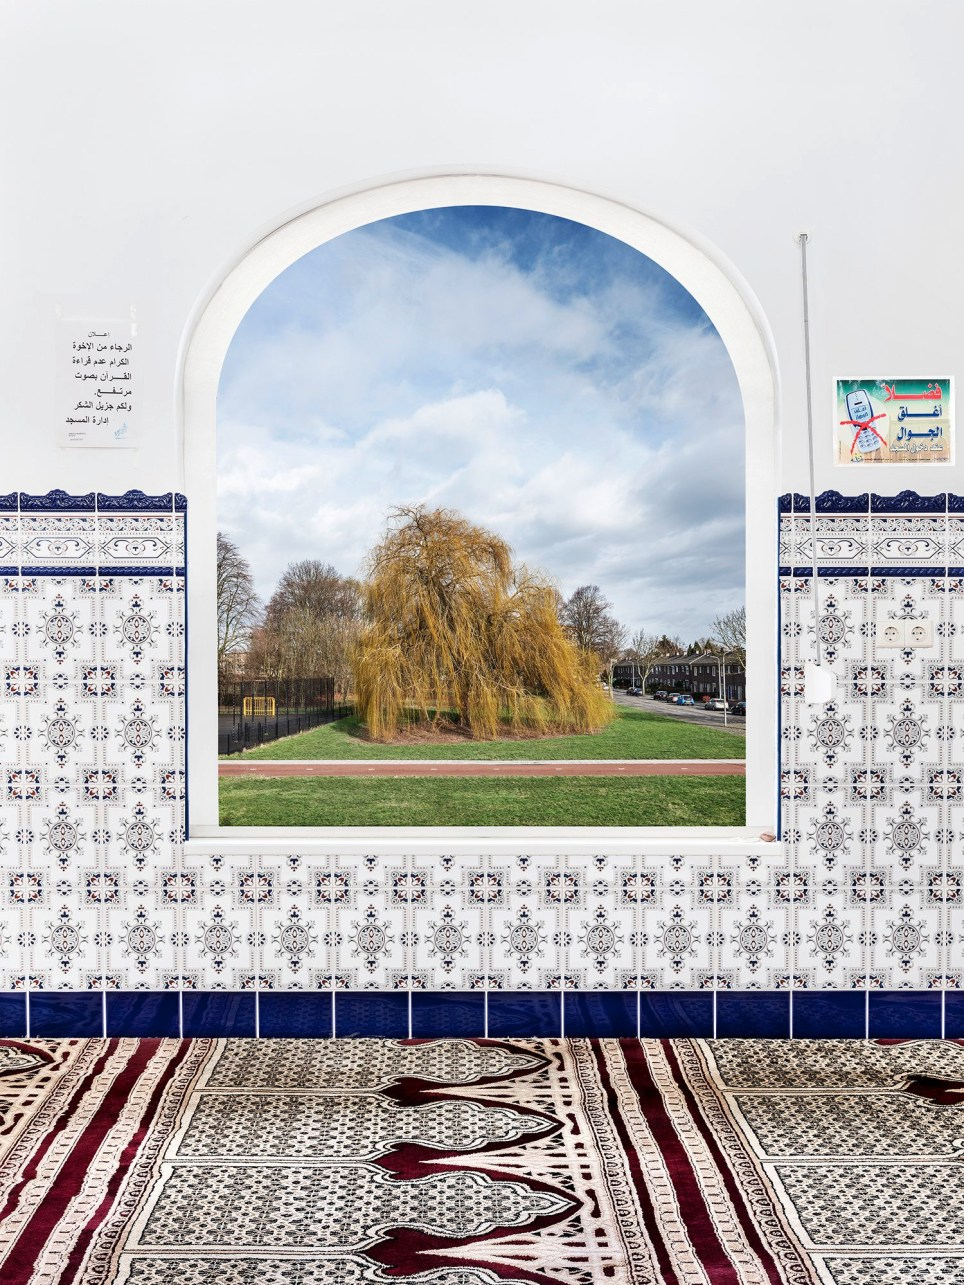 NEW DUTCH VIEWS Photographer Marwan Bassiouni (b. 1985, Switzerland) visited over seventy of the four hundred or so mosques in the Netherlands between January 2018 and February 2019. He made his choice of which spaces to photograph based on the views that their windows had to offer on the local surroundings. His composite images show real interiors combined with the actual view from the mosque. In his series New Dutch Views, Bassiouni shows the diversity of Islam in apparent contrast with the equally diverse yet instantly recognizable Dutch landscape. Bassiouni?s sharply focused and detailed photographs question how Islam is represented in the West, and show a society in which several cultures exist alongside and with each other. New Dutch Views is a symbolic portrait of Bassiouni?s double cultural background, and it highlights the fact that a new Western Islamic identity is emerging. In his first solo exhibition at the Photography Museum of the Hague seventeen large-scale photographs are accompanied by the photographer?s own biographical reflections. The New Dutch Views book counts all thirty photographs and short texts of the series. The latter are intimately placed at the back of each photograph requiring one to delicately manipulate the pages in order to access the content.